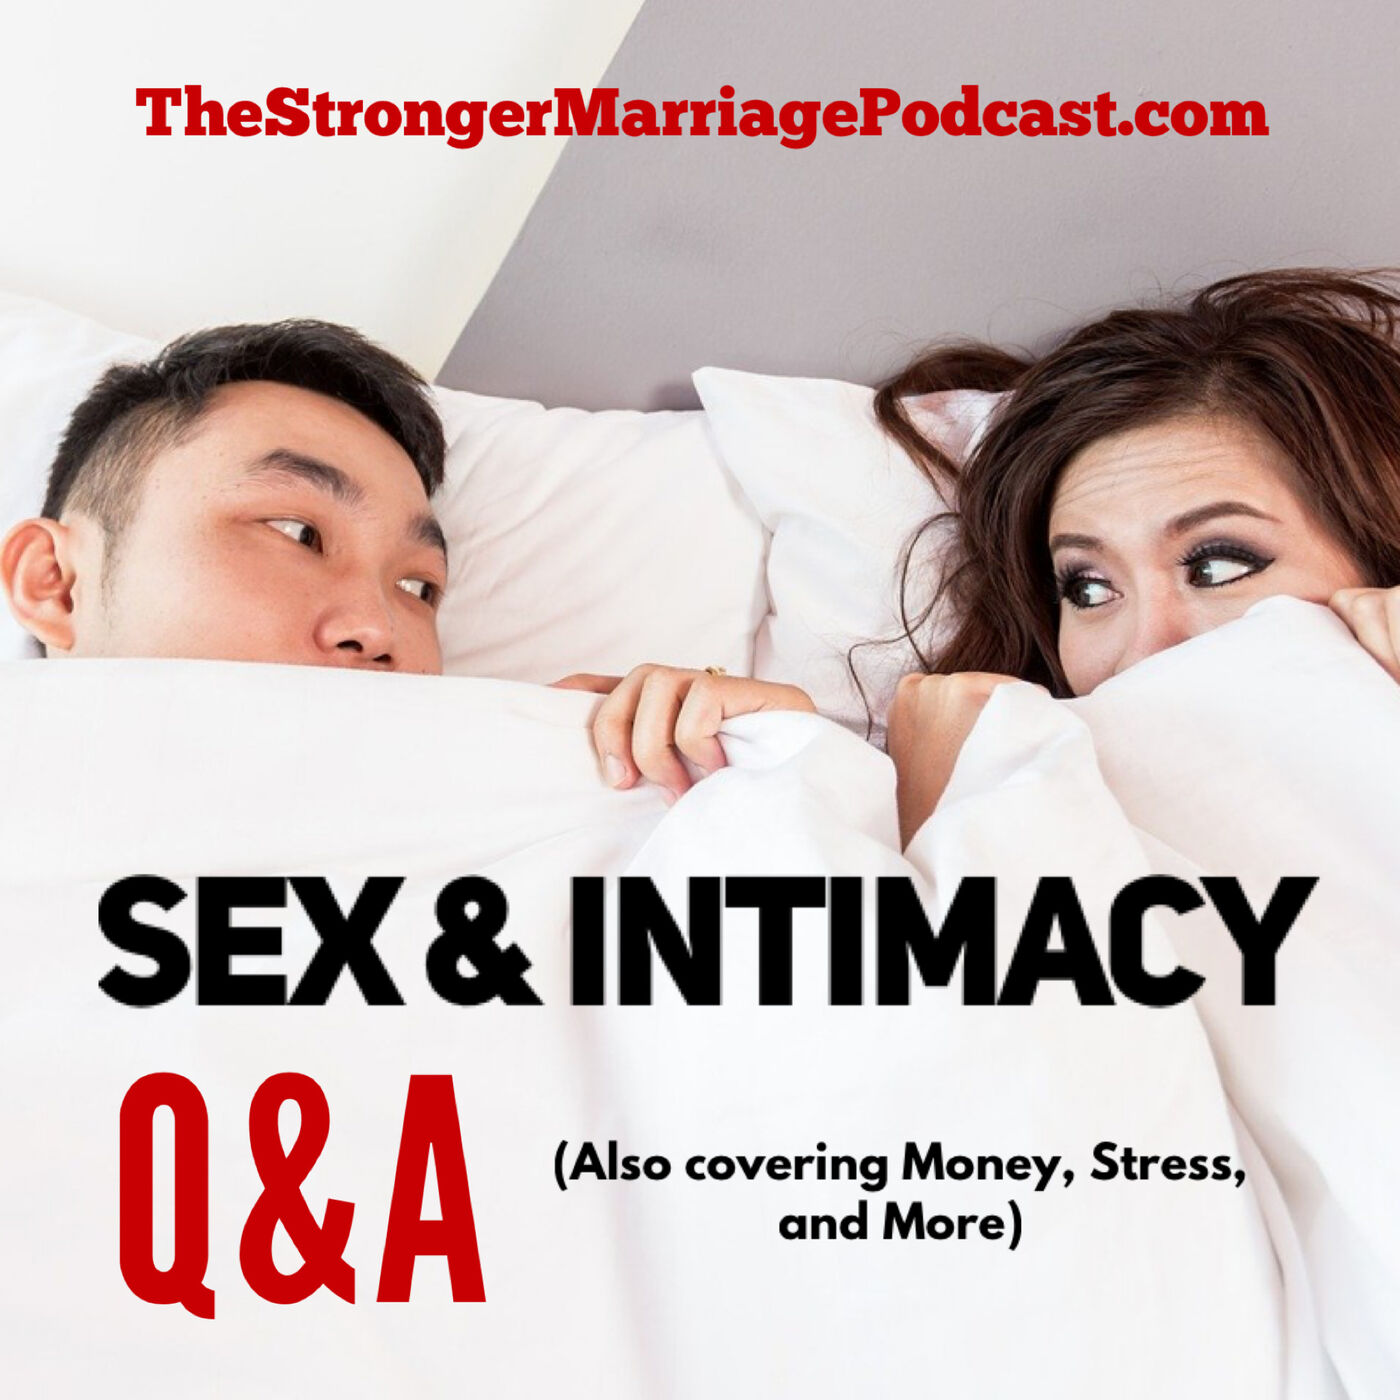 Q&A on SEX, INTIMACY, MONEY, and MORE